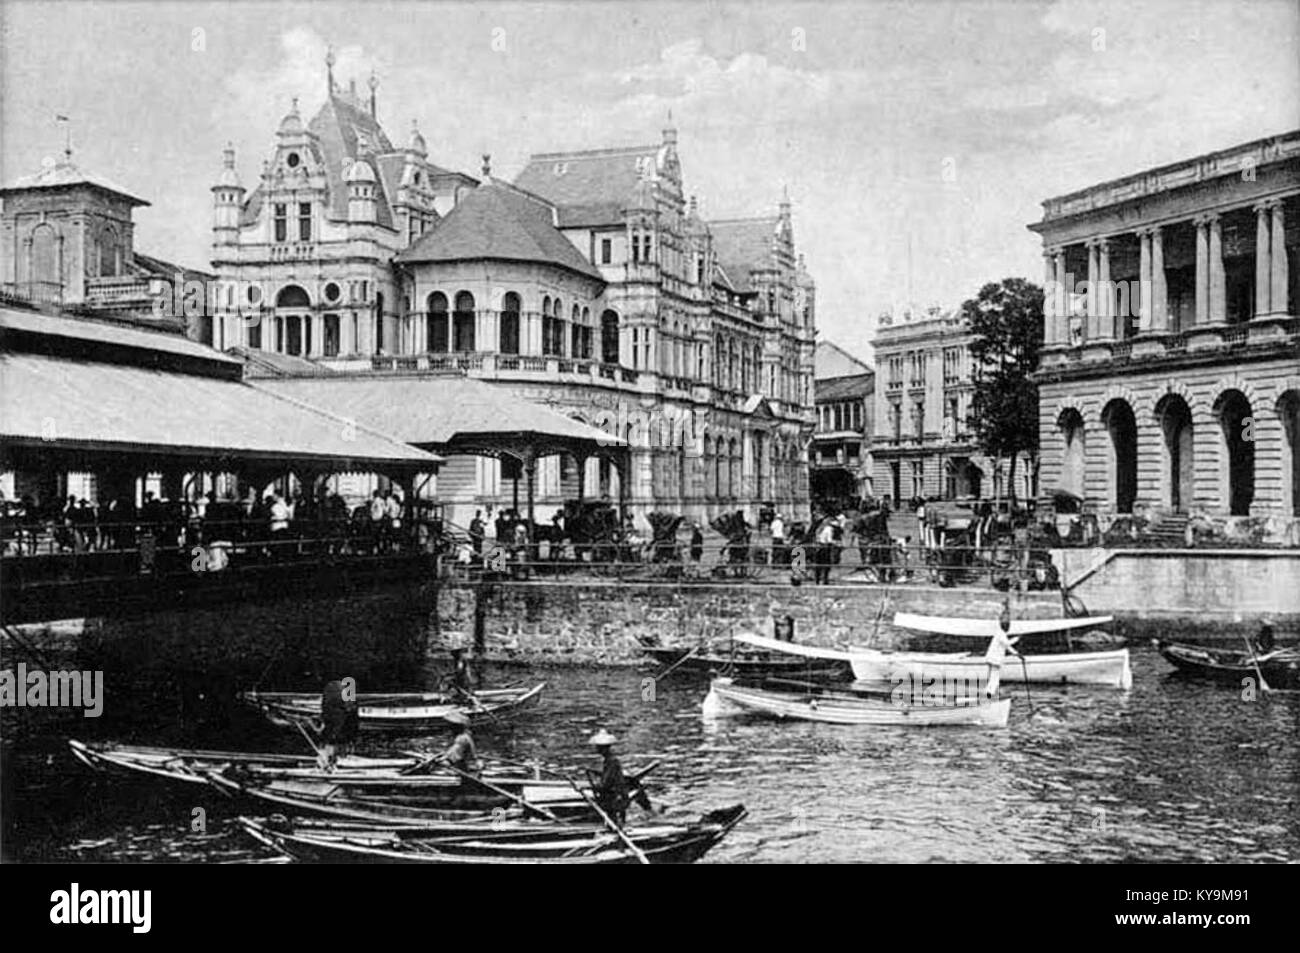 Old pictures of singapore history Universal Studios Singapore - Wikipedia